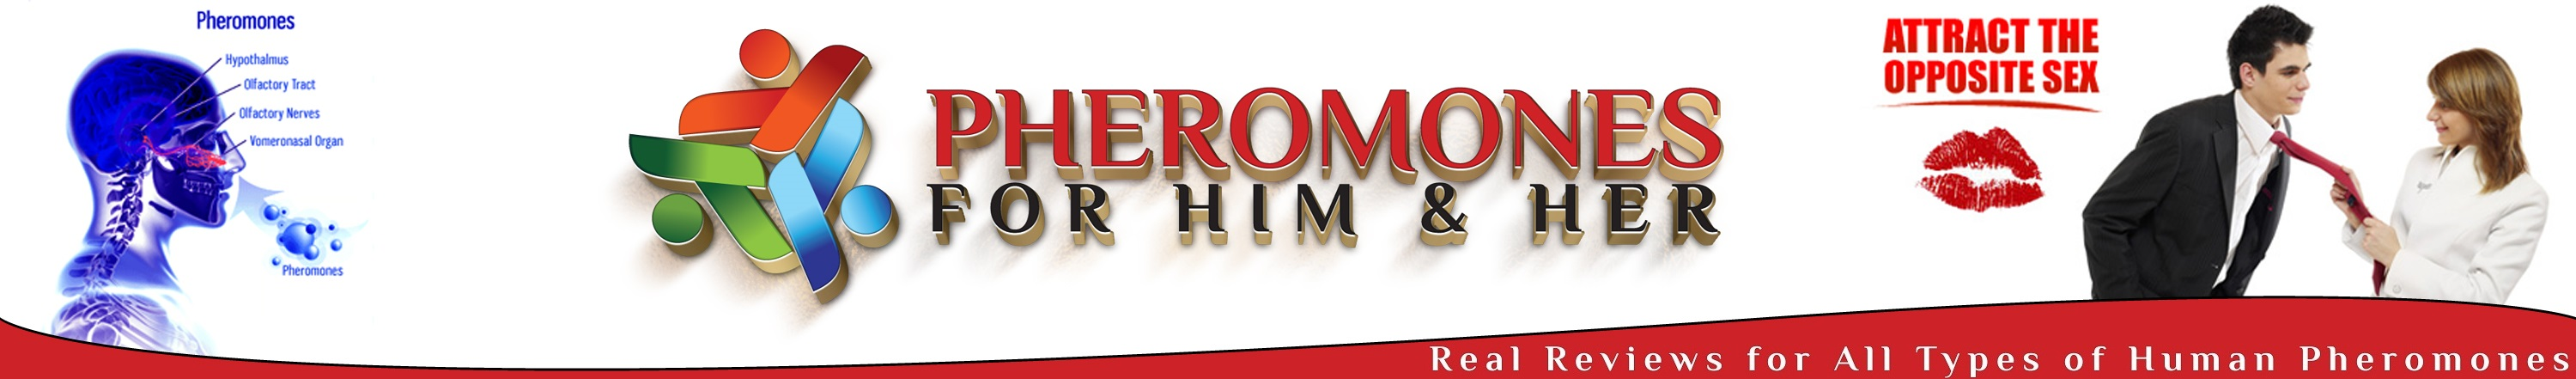 Pheromones For Him & Her